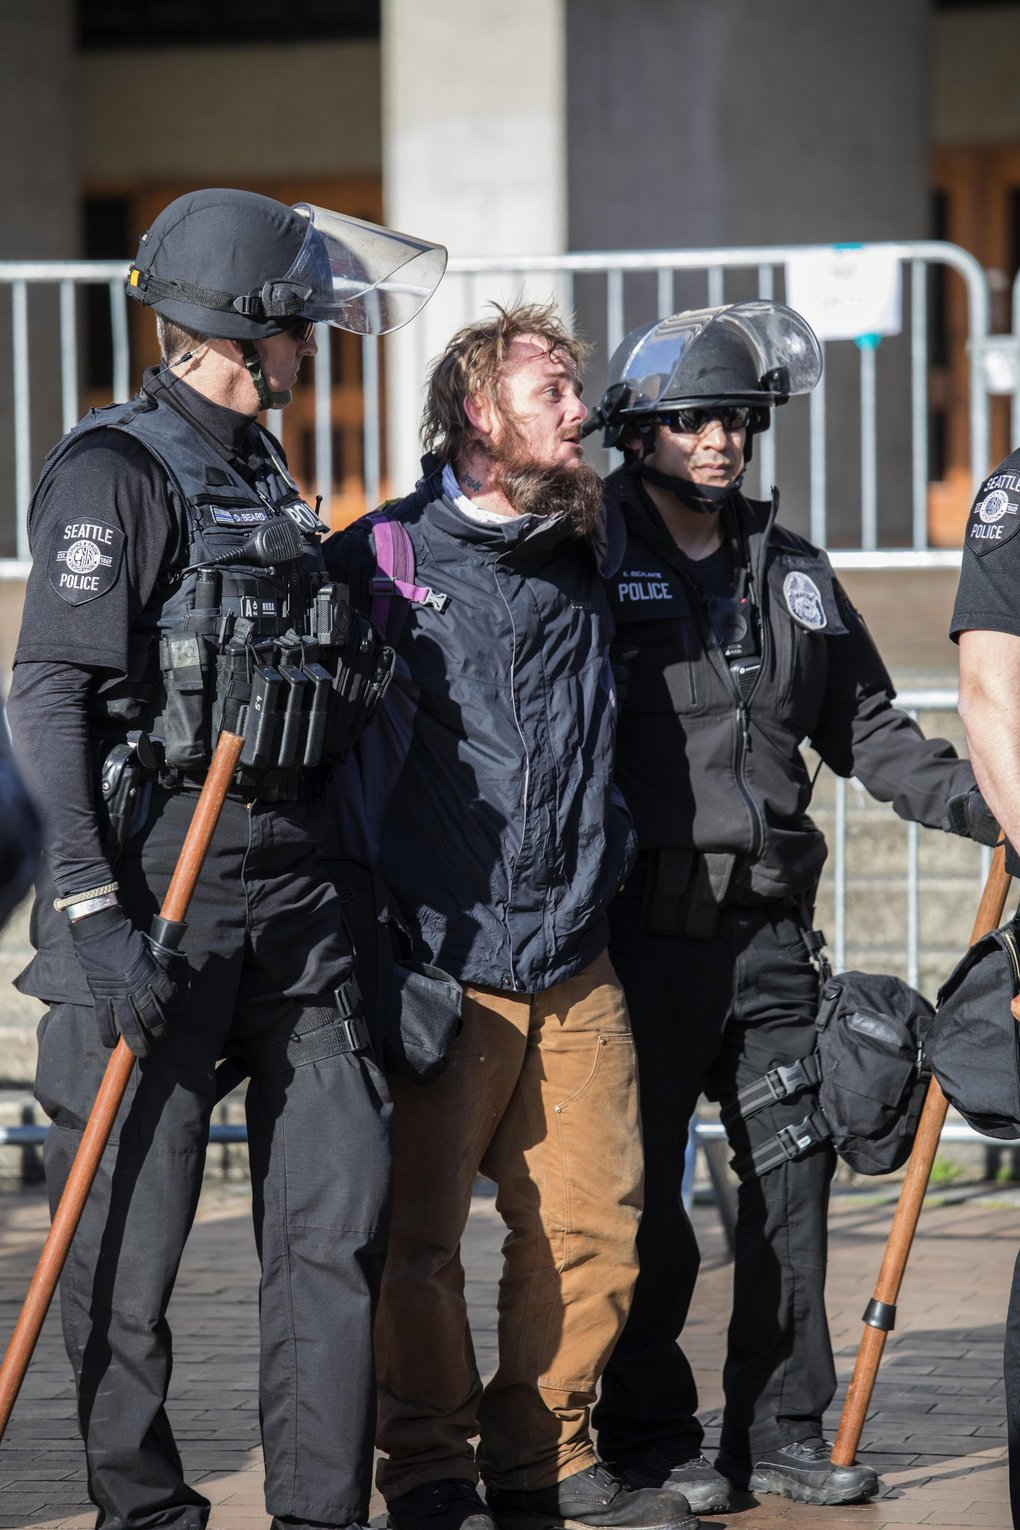 One of the counterprotesters arrested after a scuffle is taken away during the Patriot Prayer rally on the UW campus.  (Steve Ringman / The Seattle Times)